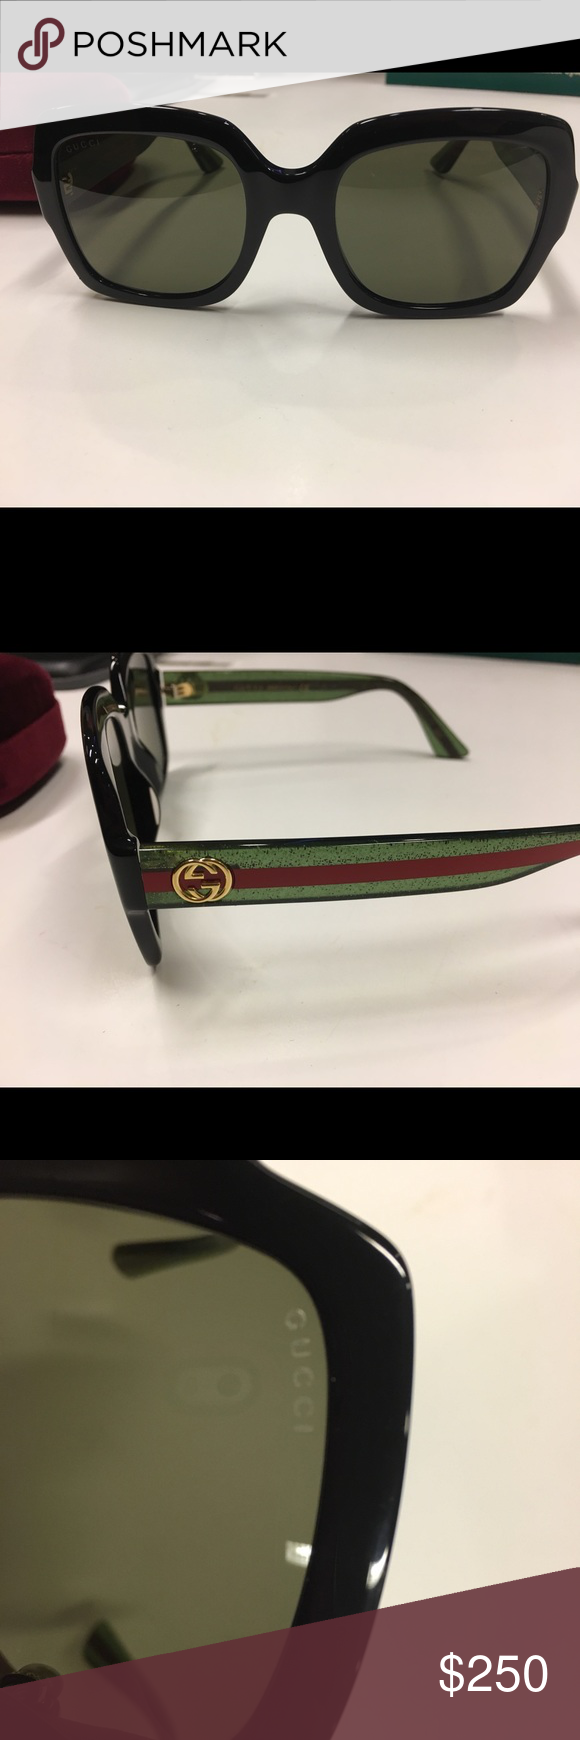 d81617dcb5a Authentic Gucci GG black square sunglasses 2018 beautiful red green sparkle  GG on the side